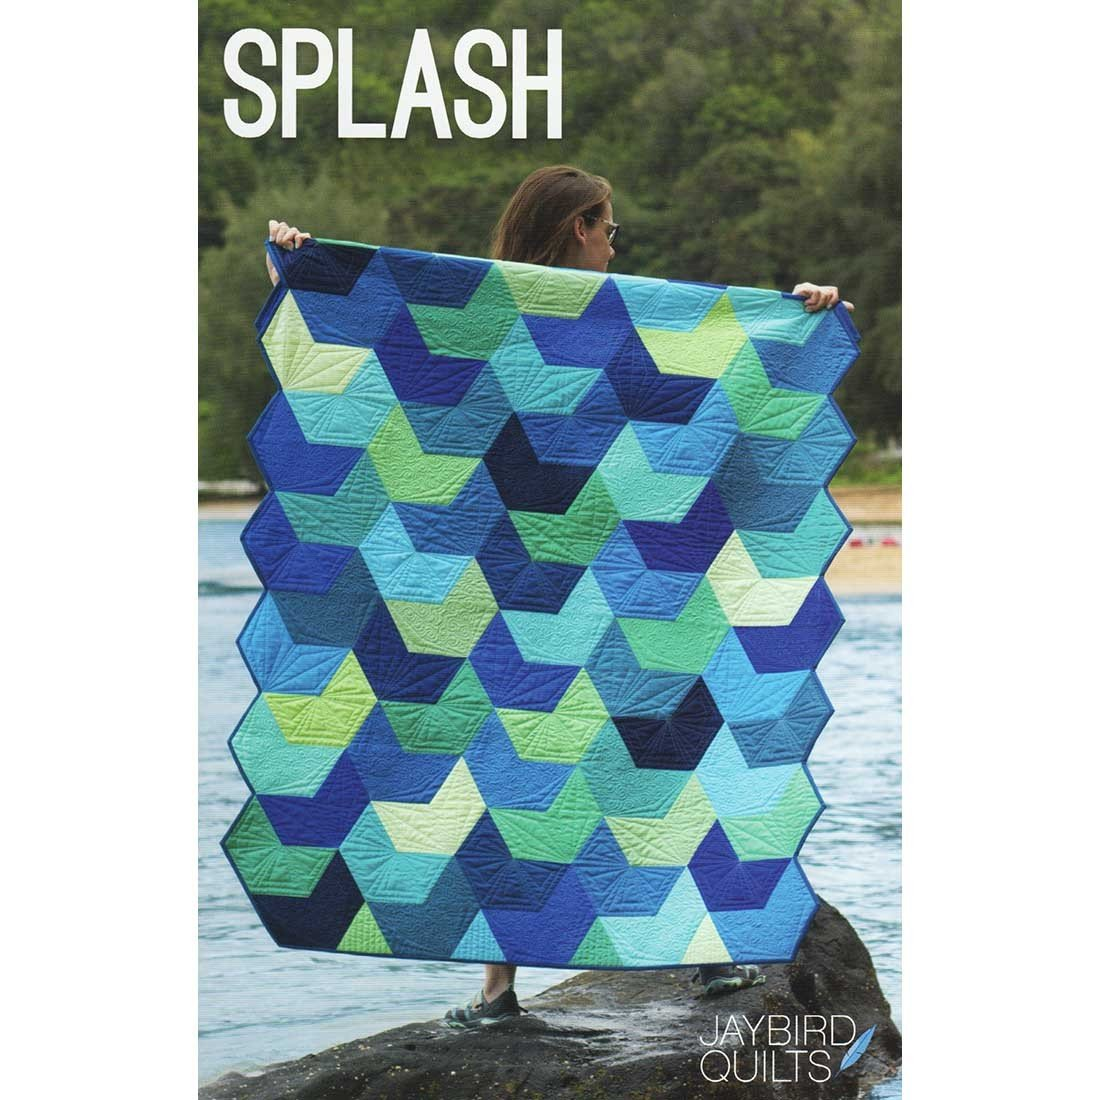 Splash Quilt Pattern in 5 Sizes by Jaybird Quilts